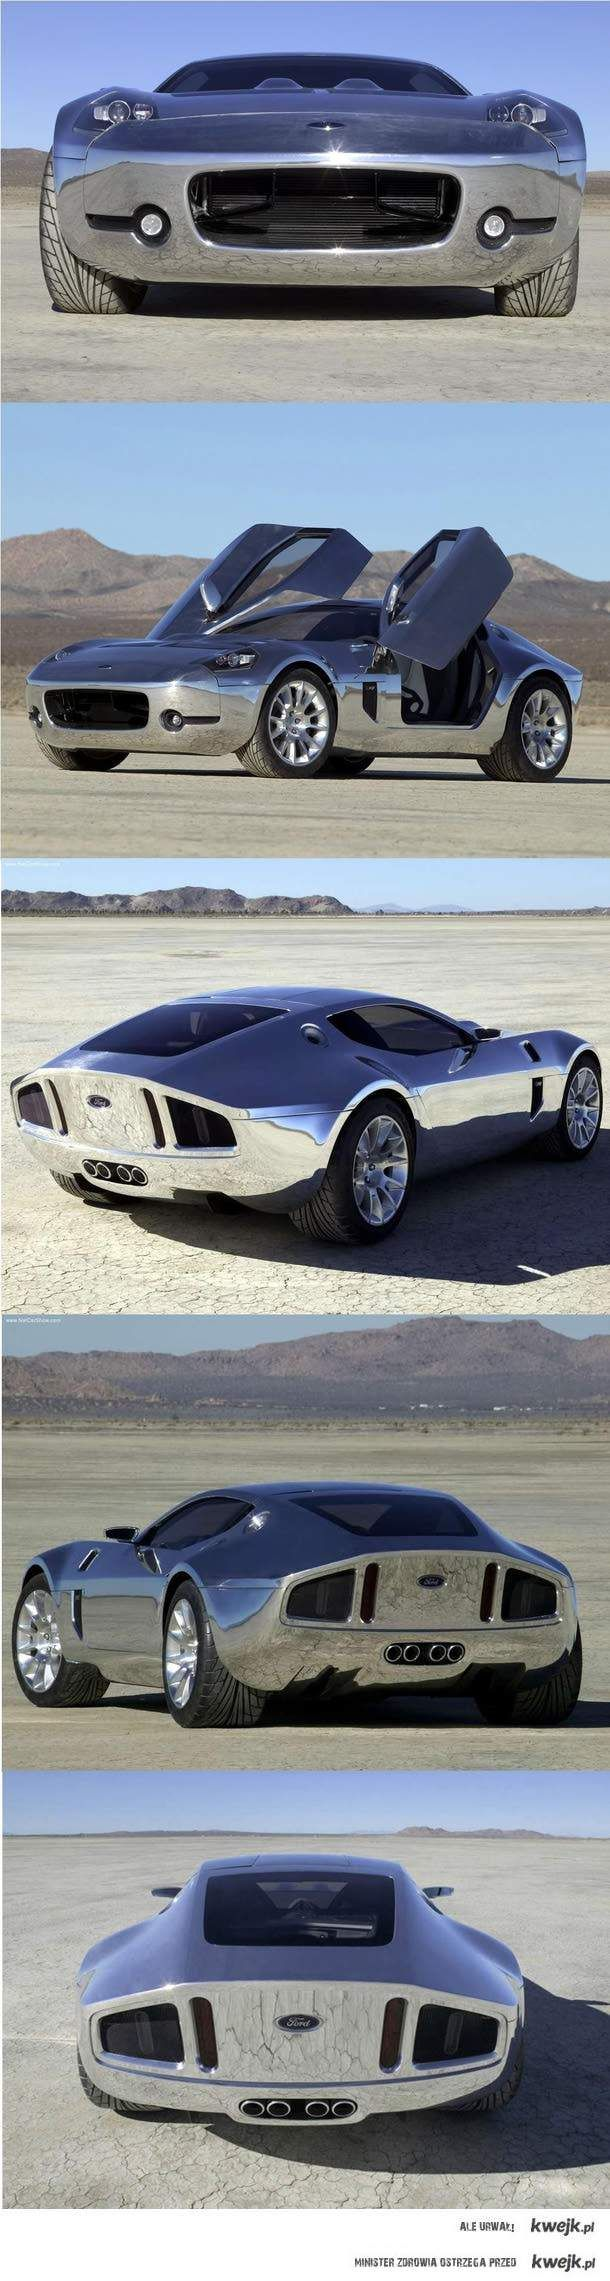 The Ford Shelby GR-1 was a 2.2 million dollar concept car.